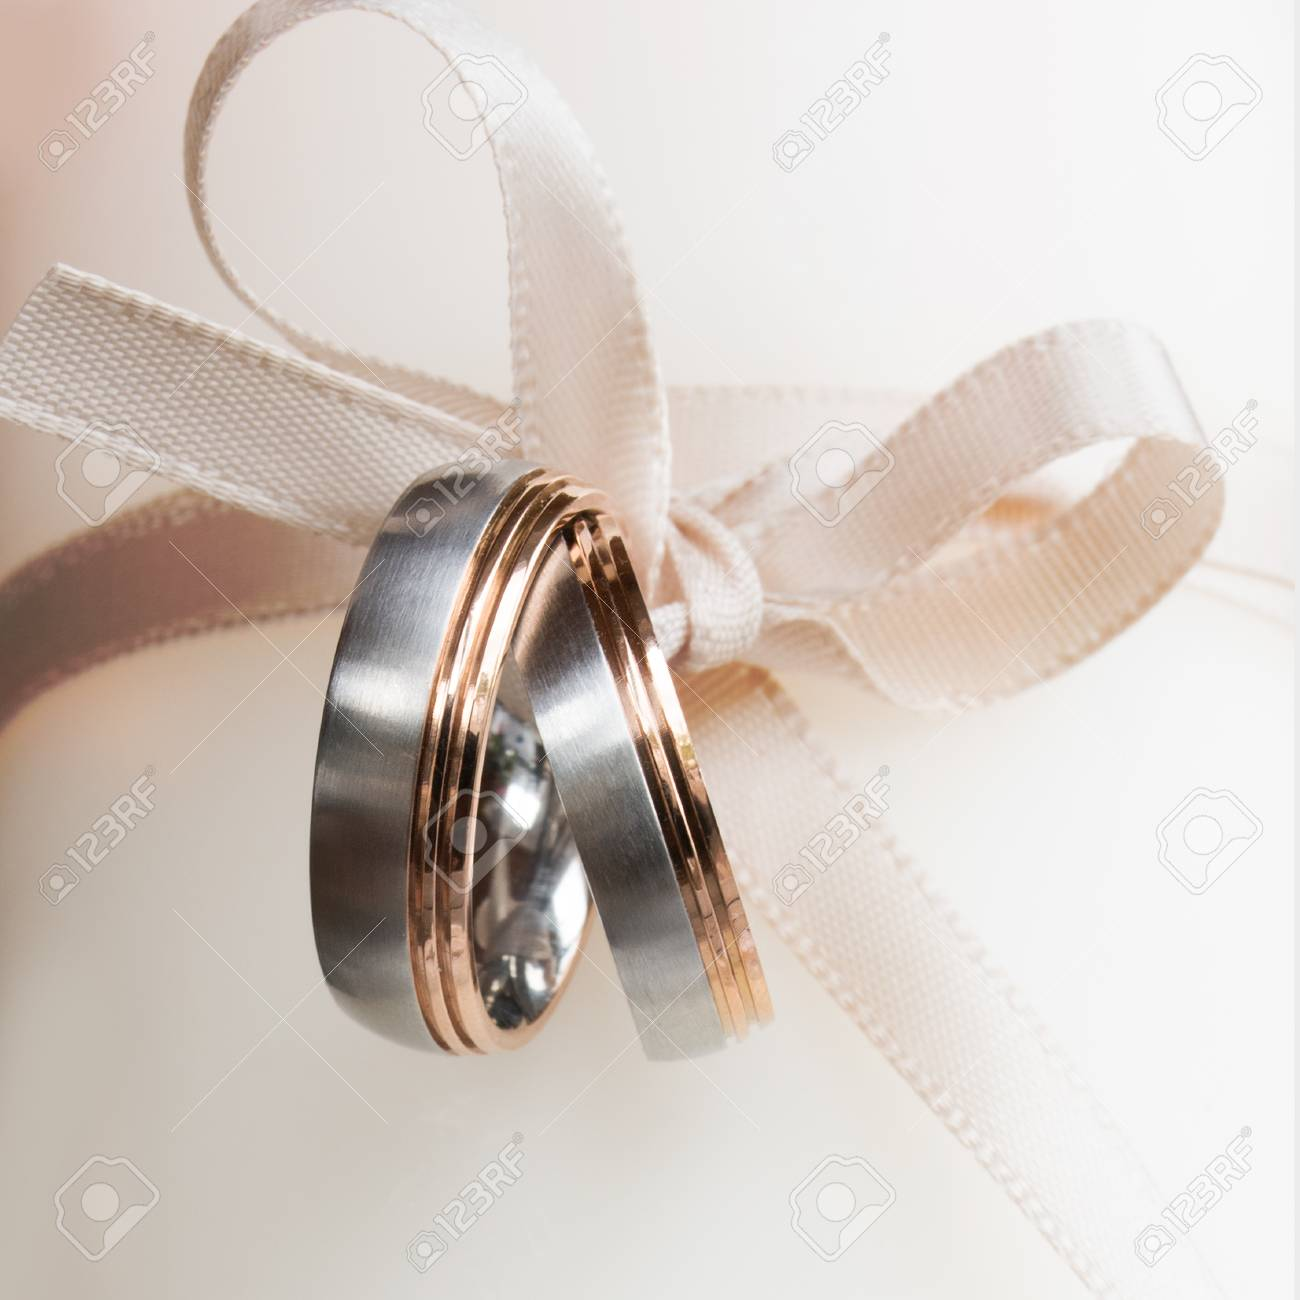 Rings Wonderful for wedding pictures rare photo